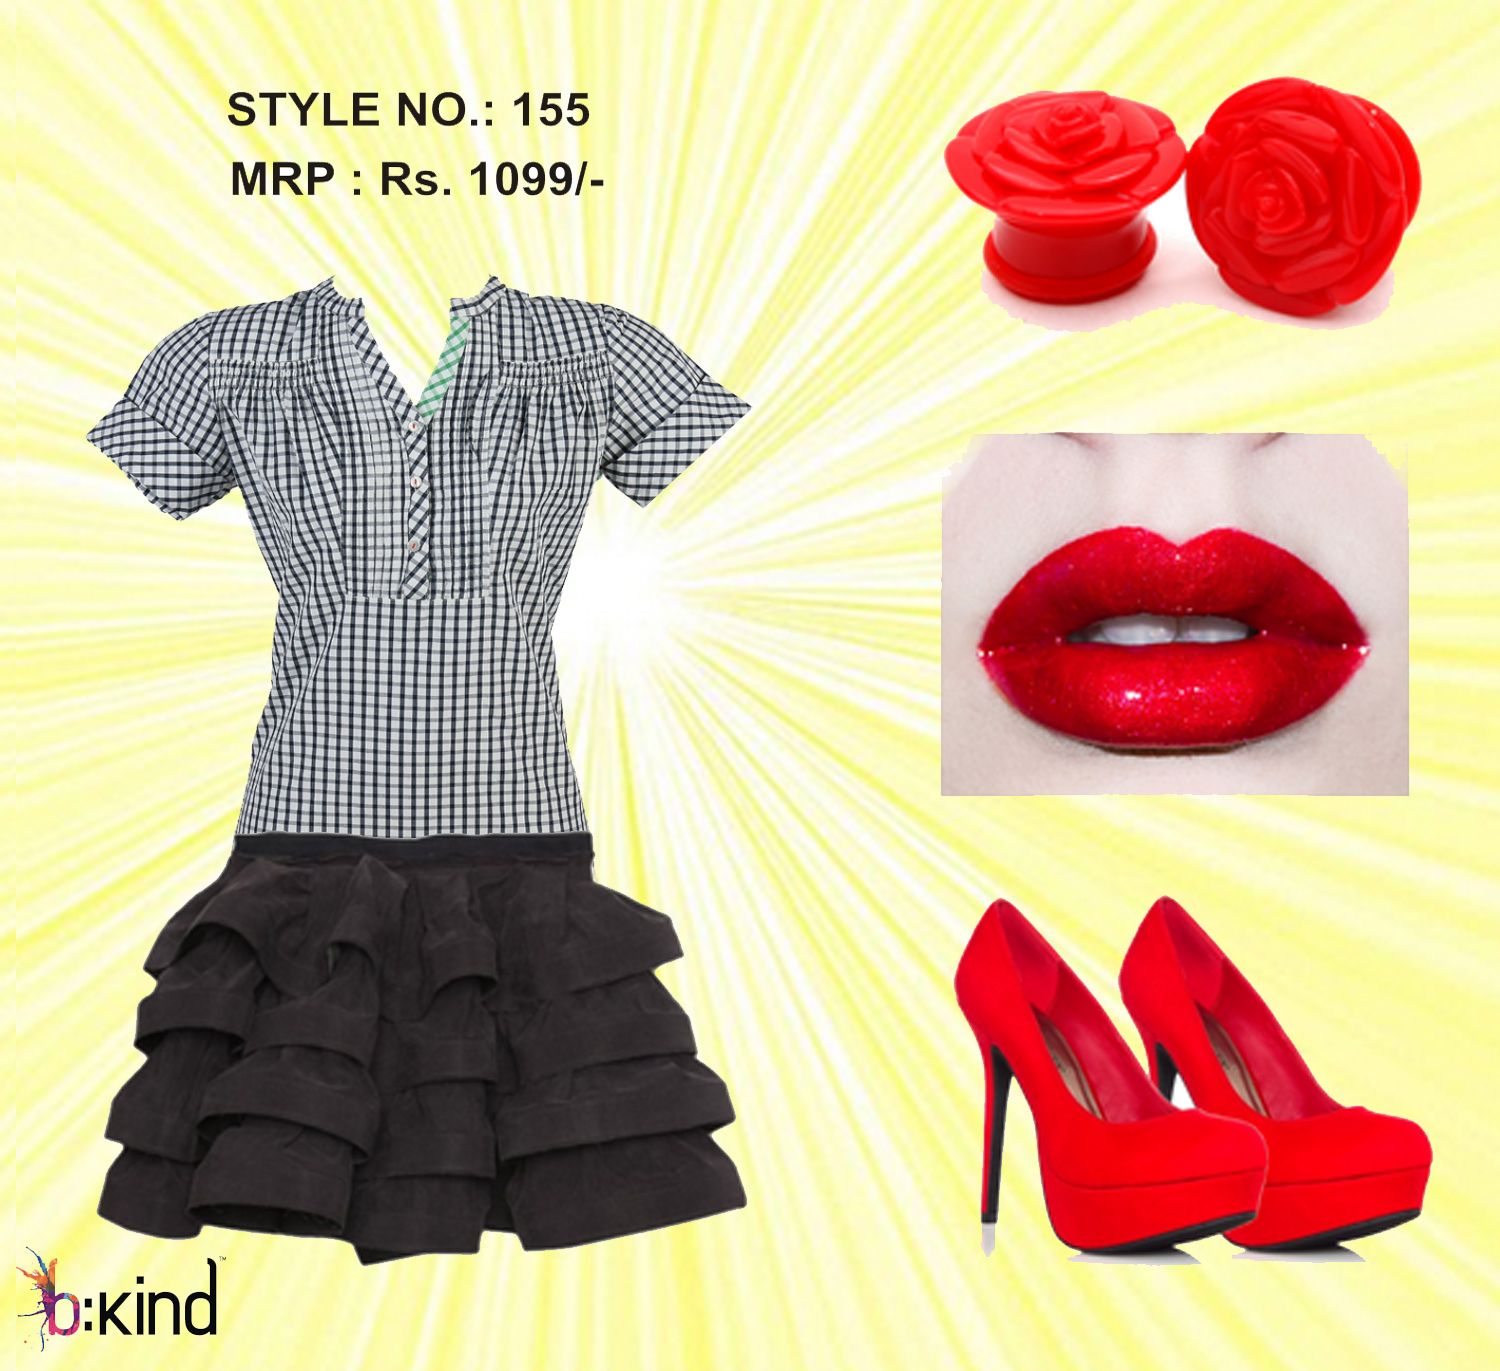 Fashionable red and black combination